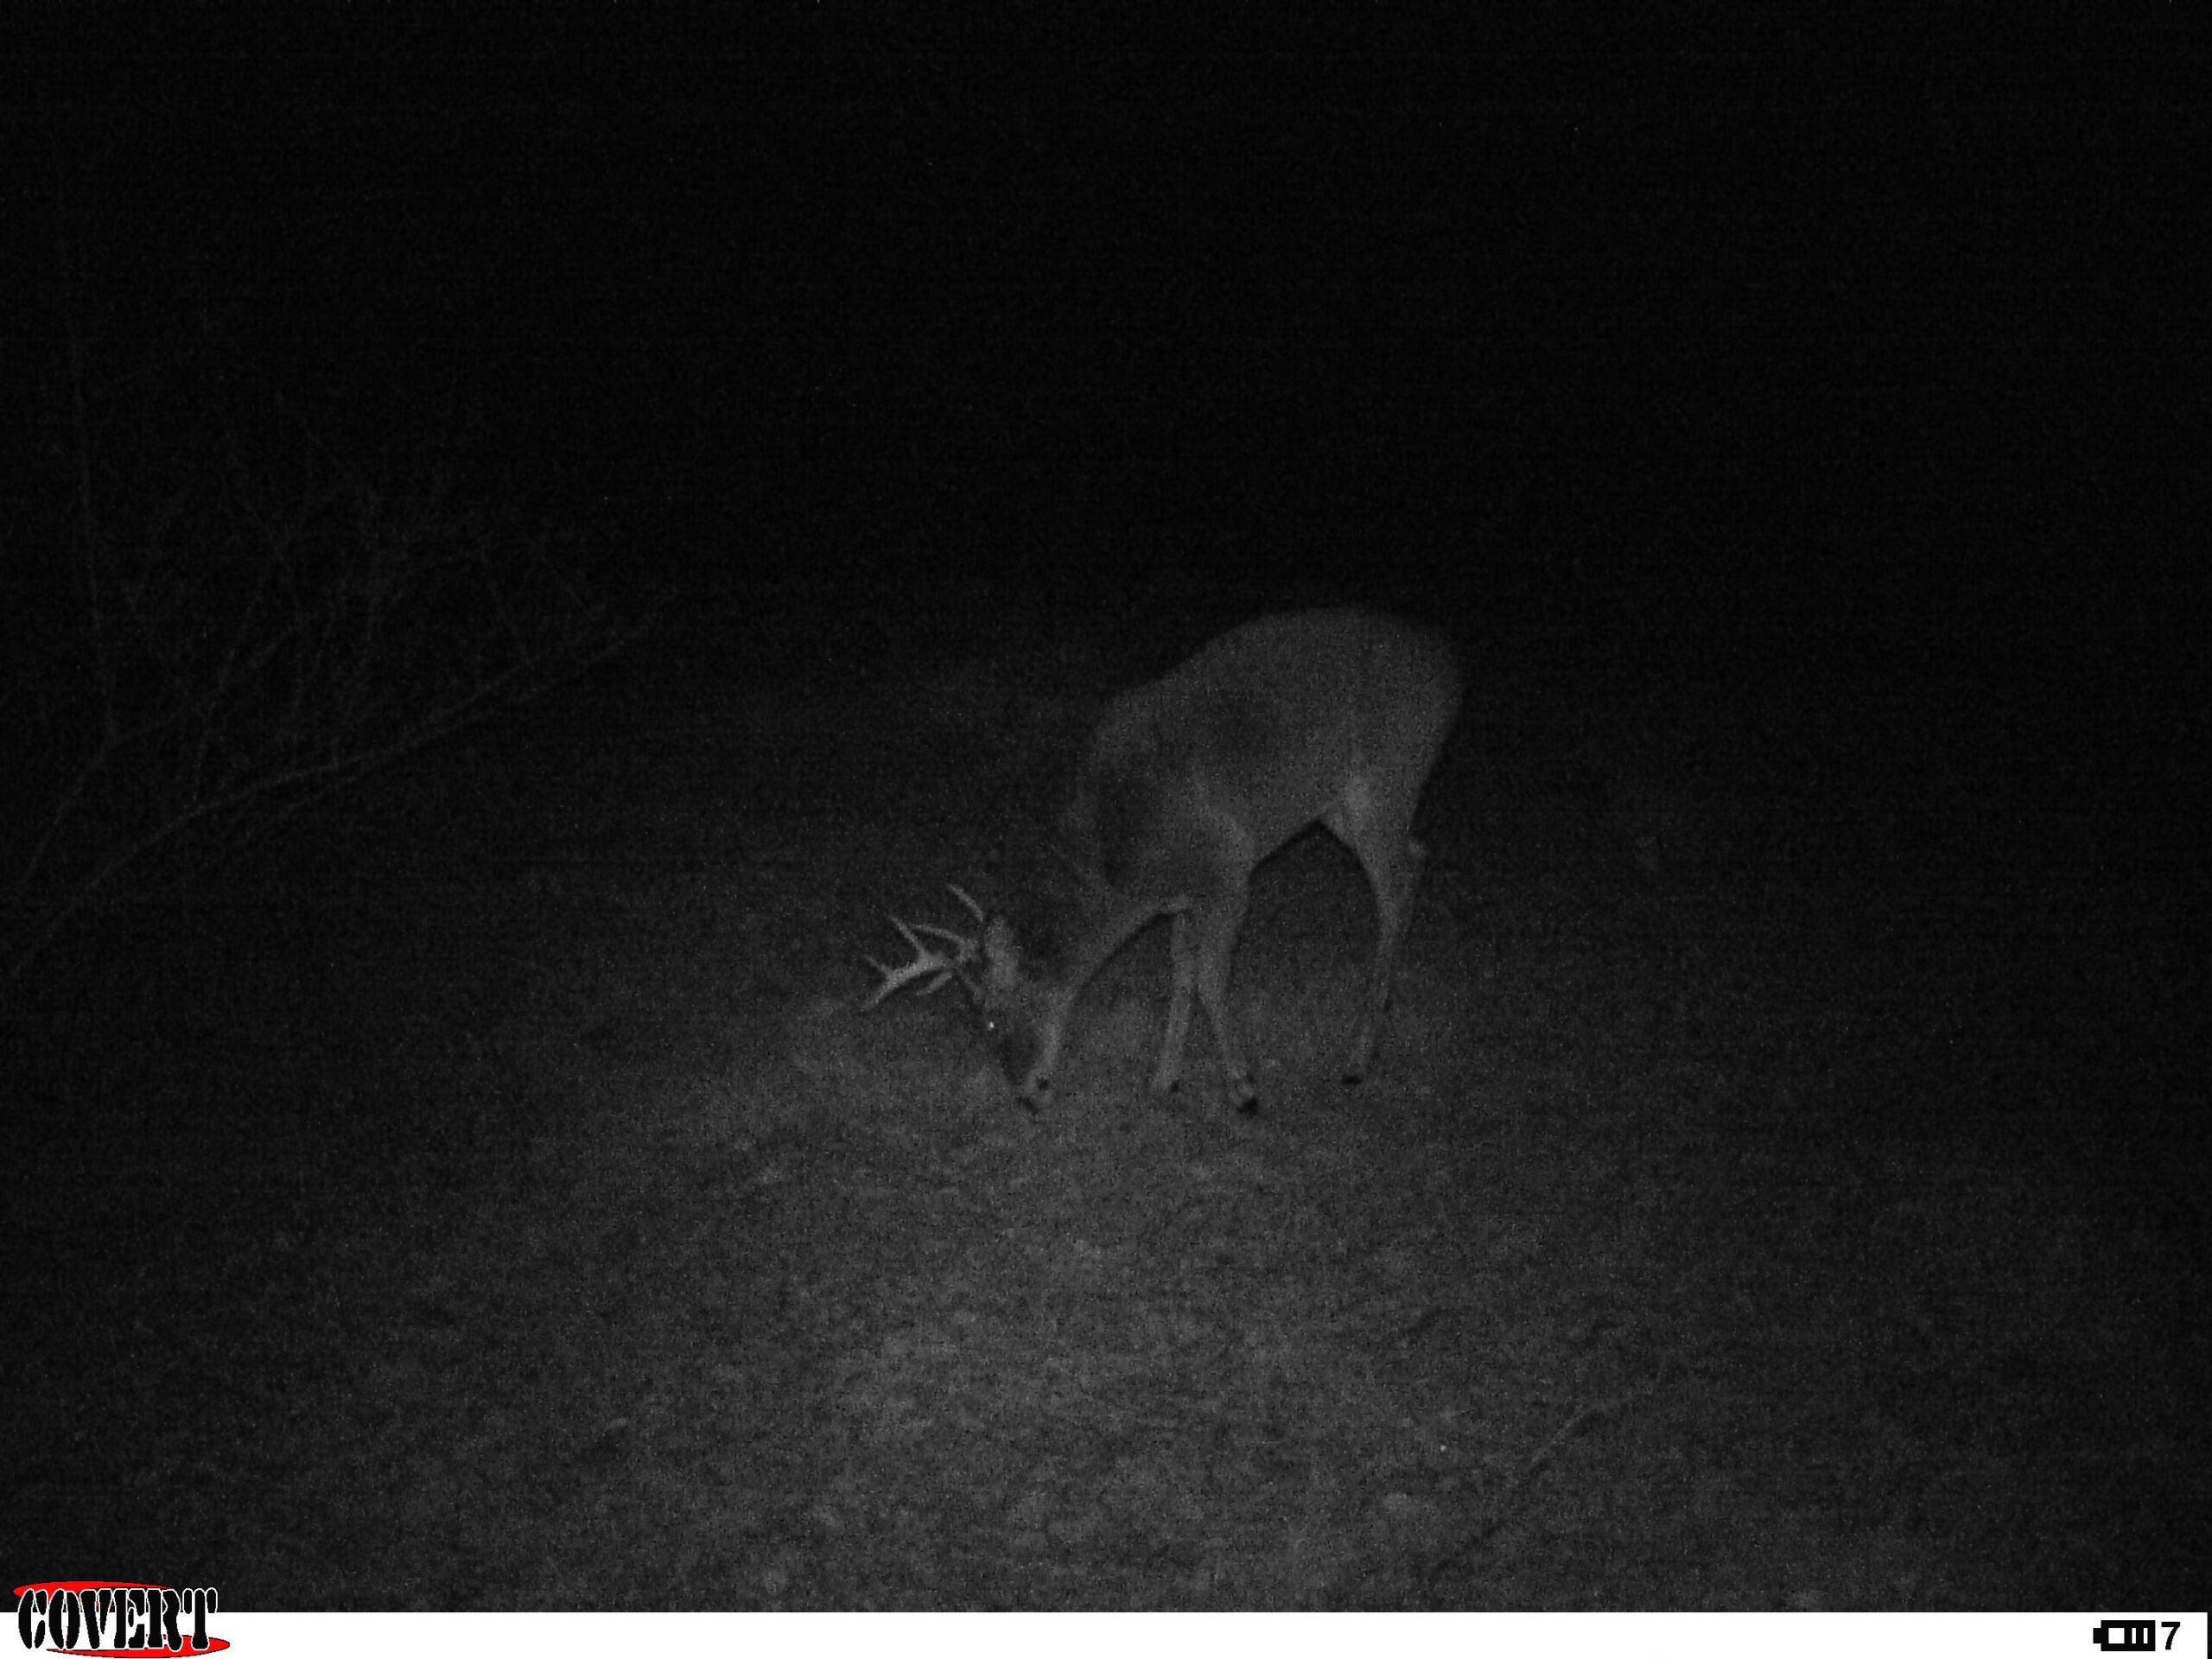 Micro Manager: Finally, a Buck on Camera